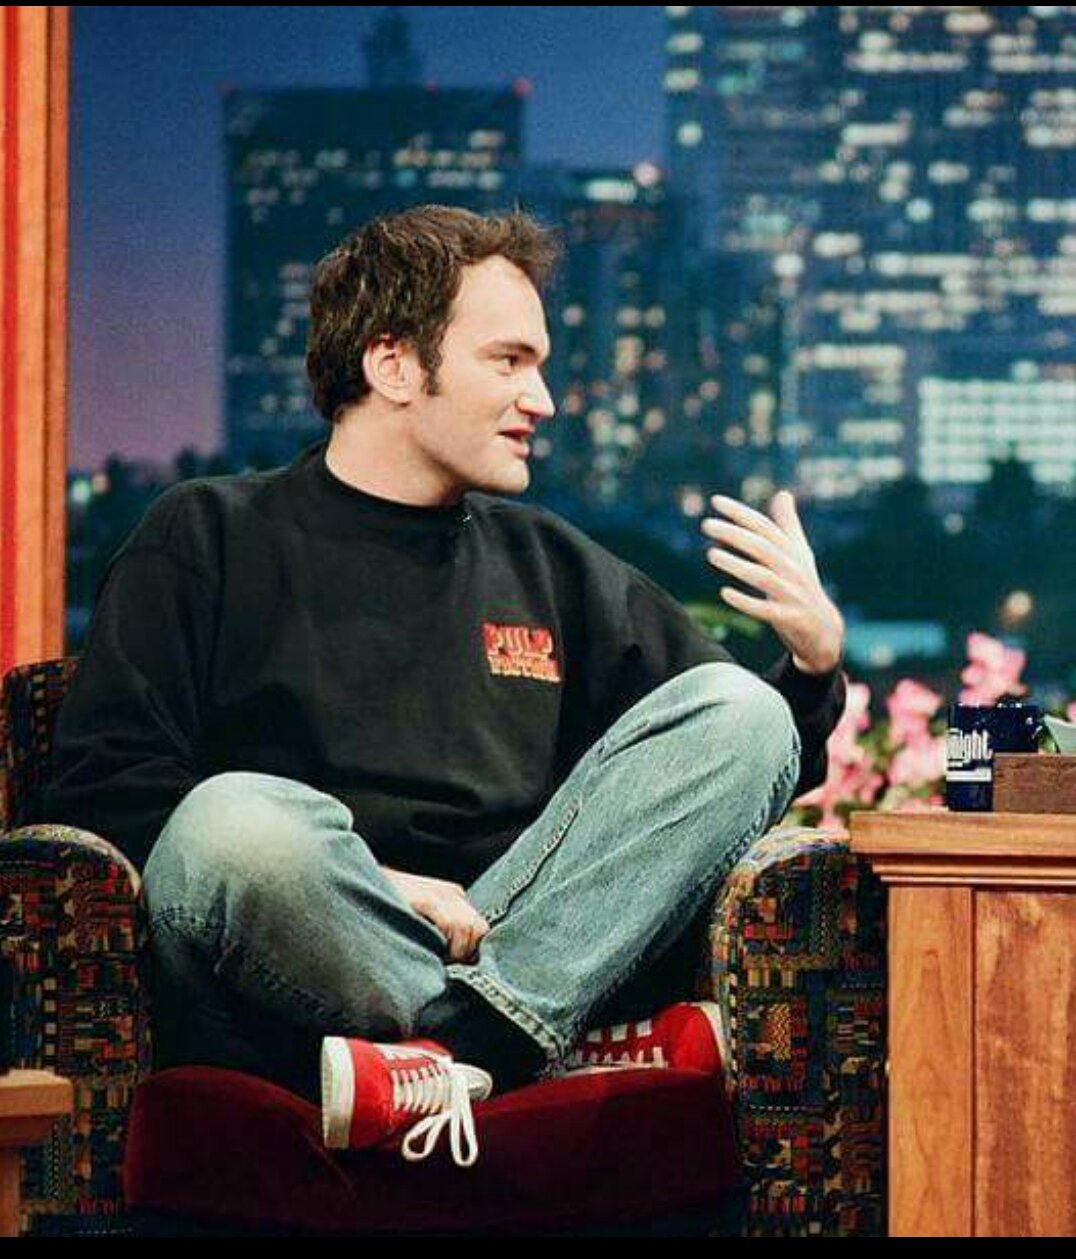 Happy birthday to the crazy & my 2nd favourite director, Quentin Tarantino